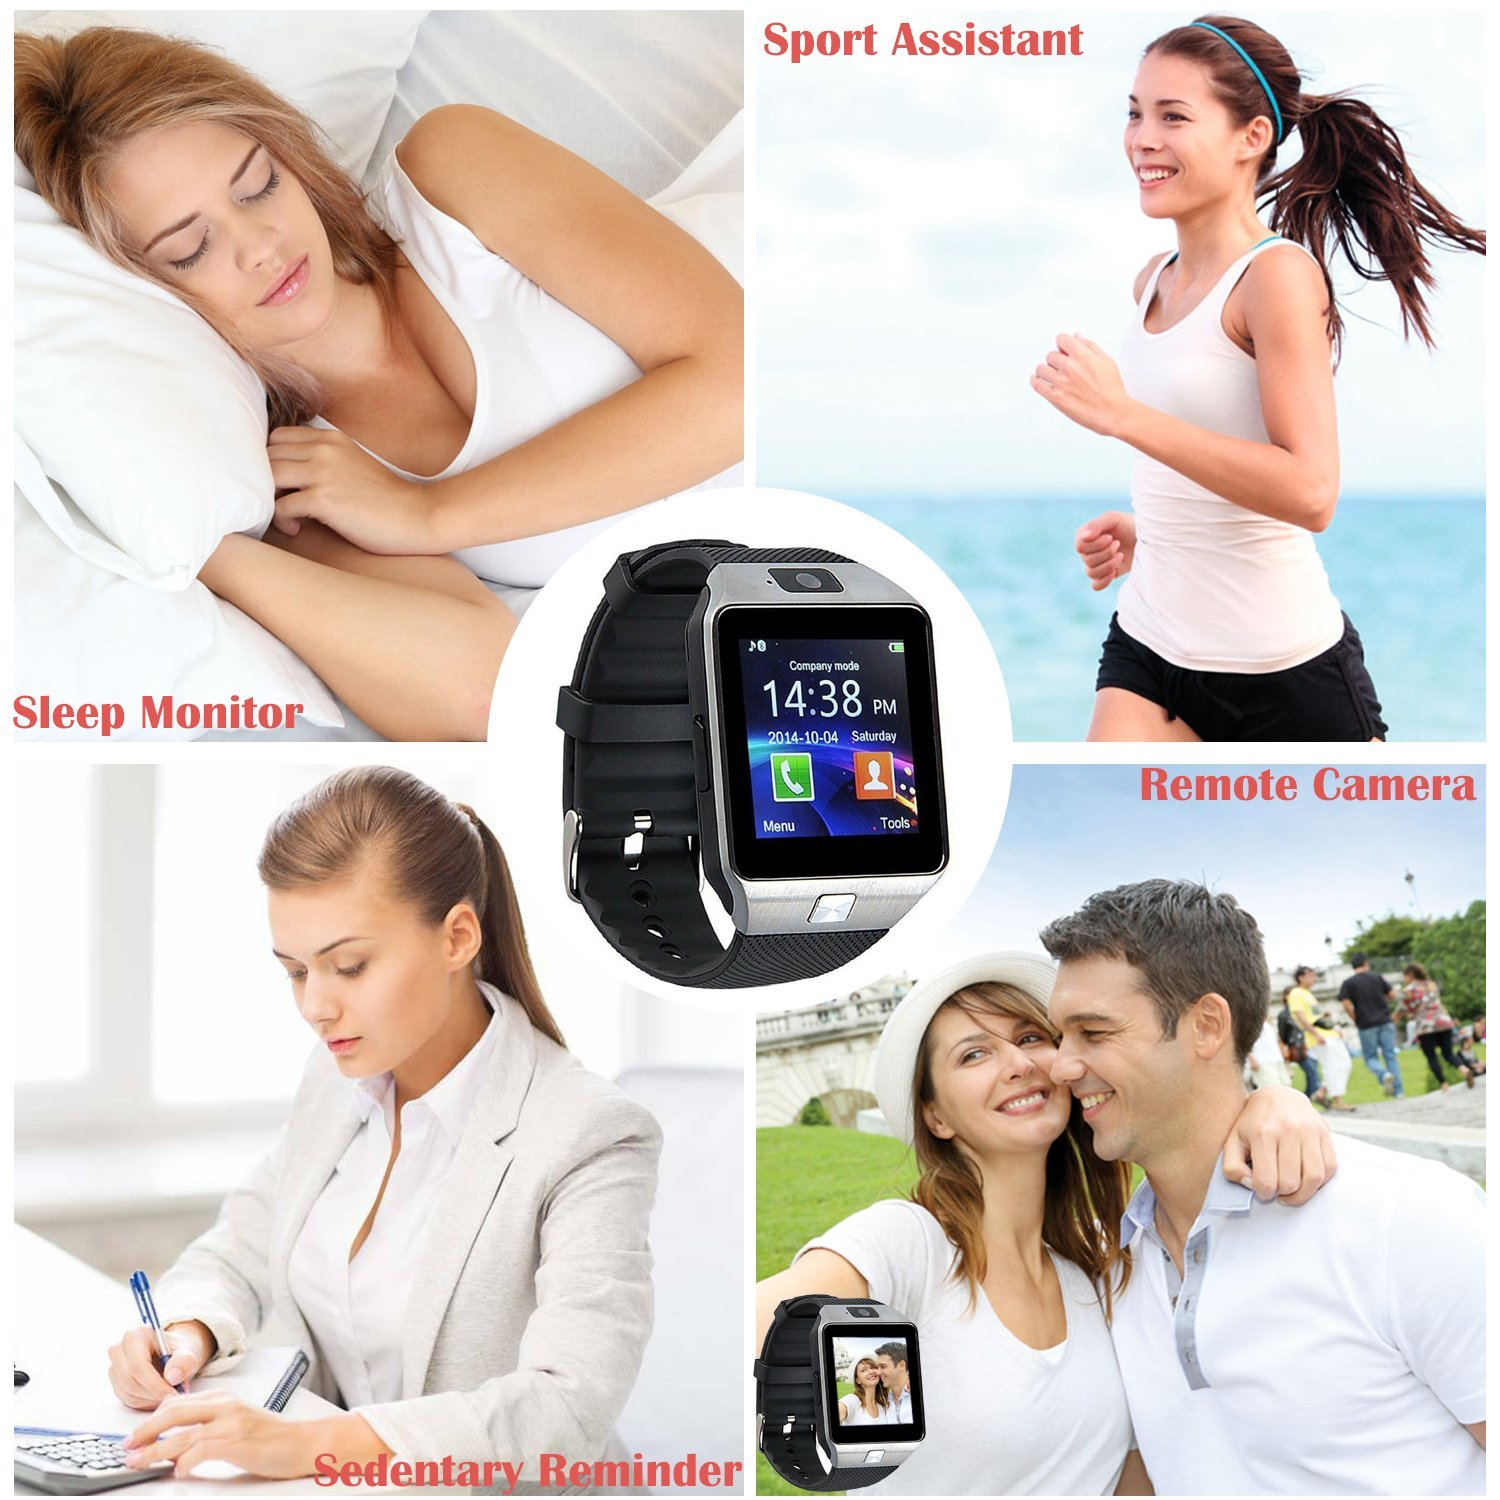 81z9bedsyfL. SL1500  - Smart Watch DZ09 For Android Devices